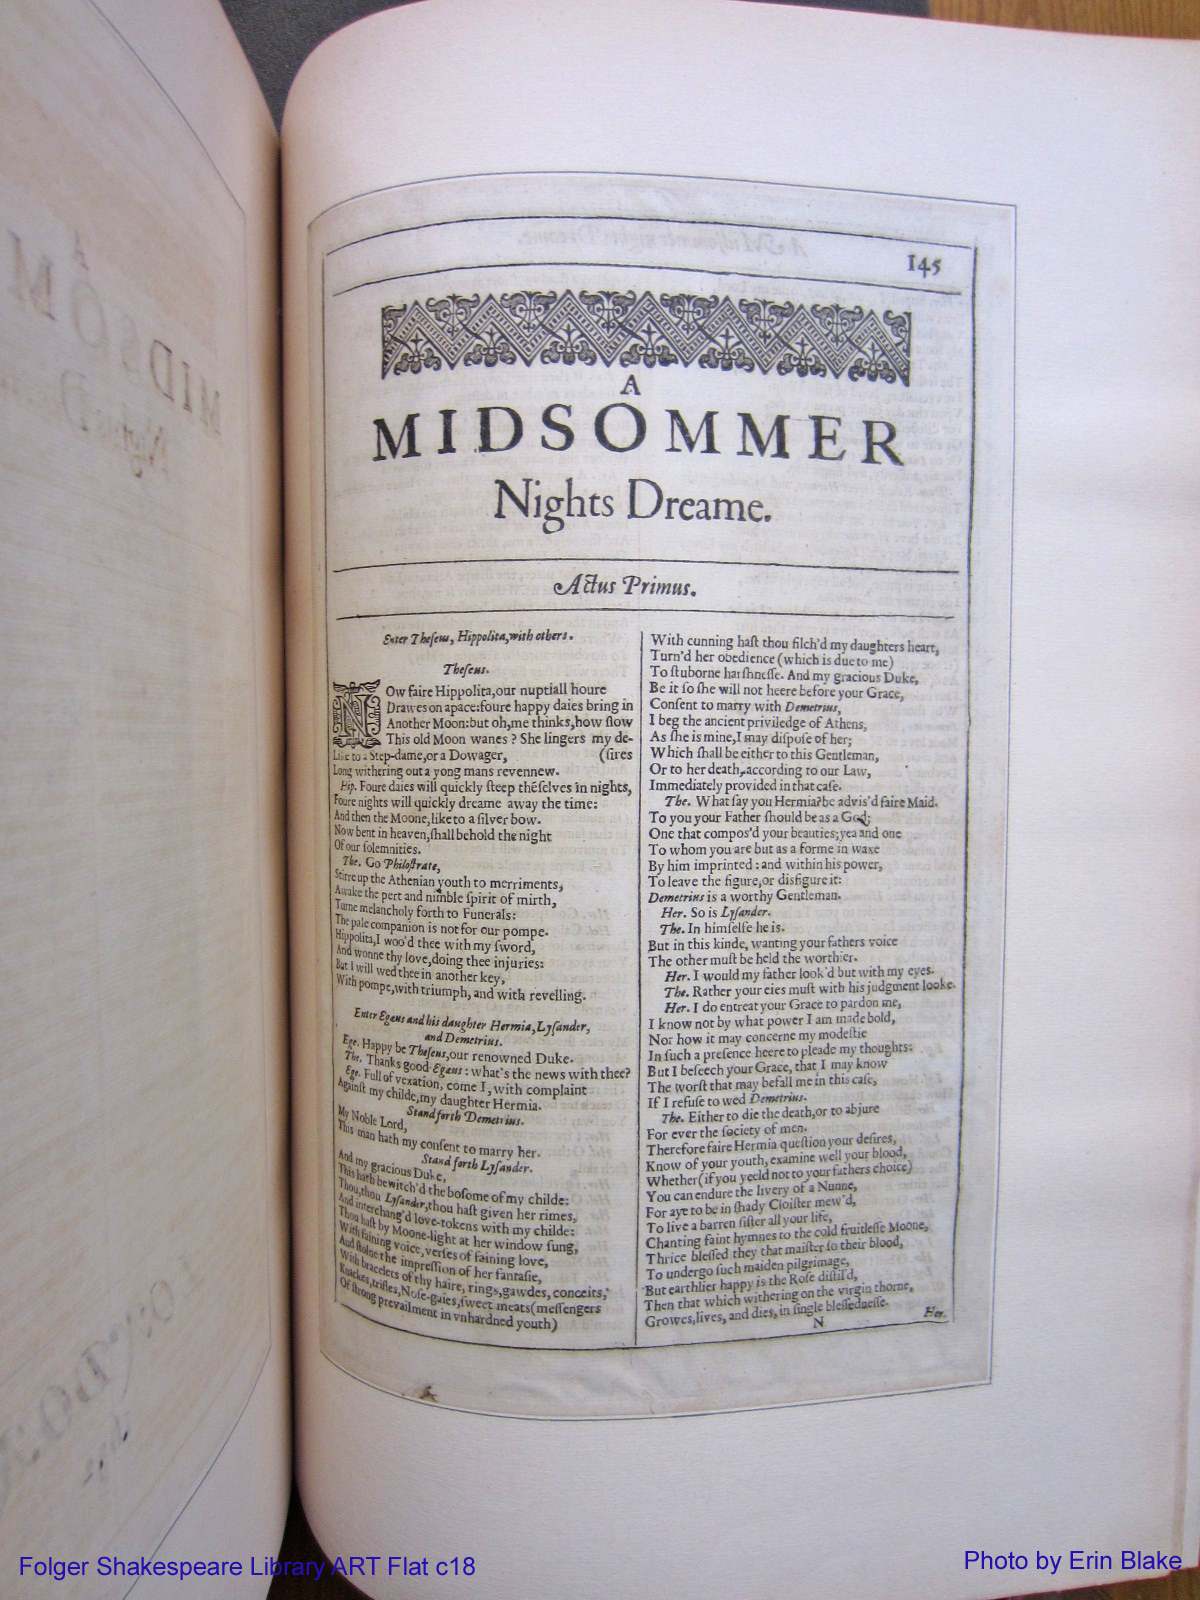 A Midsummer Night's Dream from a Second Folio edition of the Works of Shakespeare (1632)